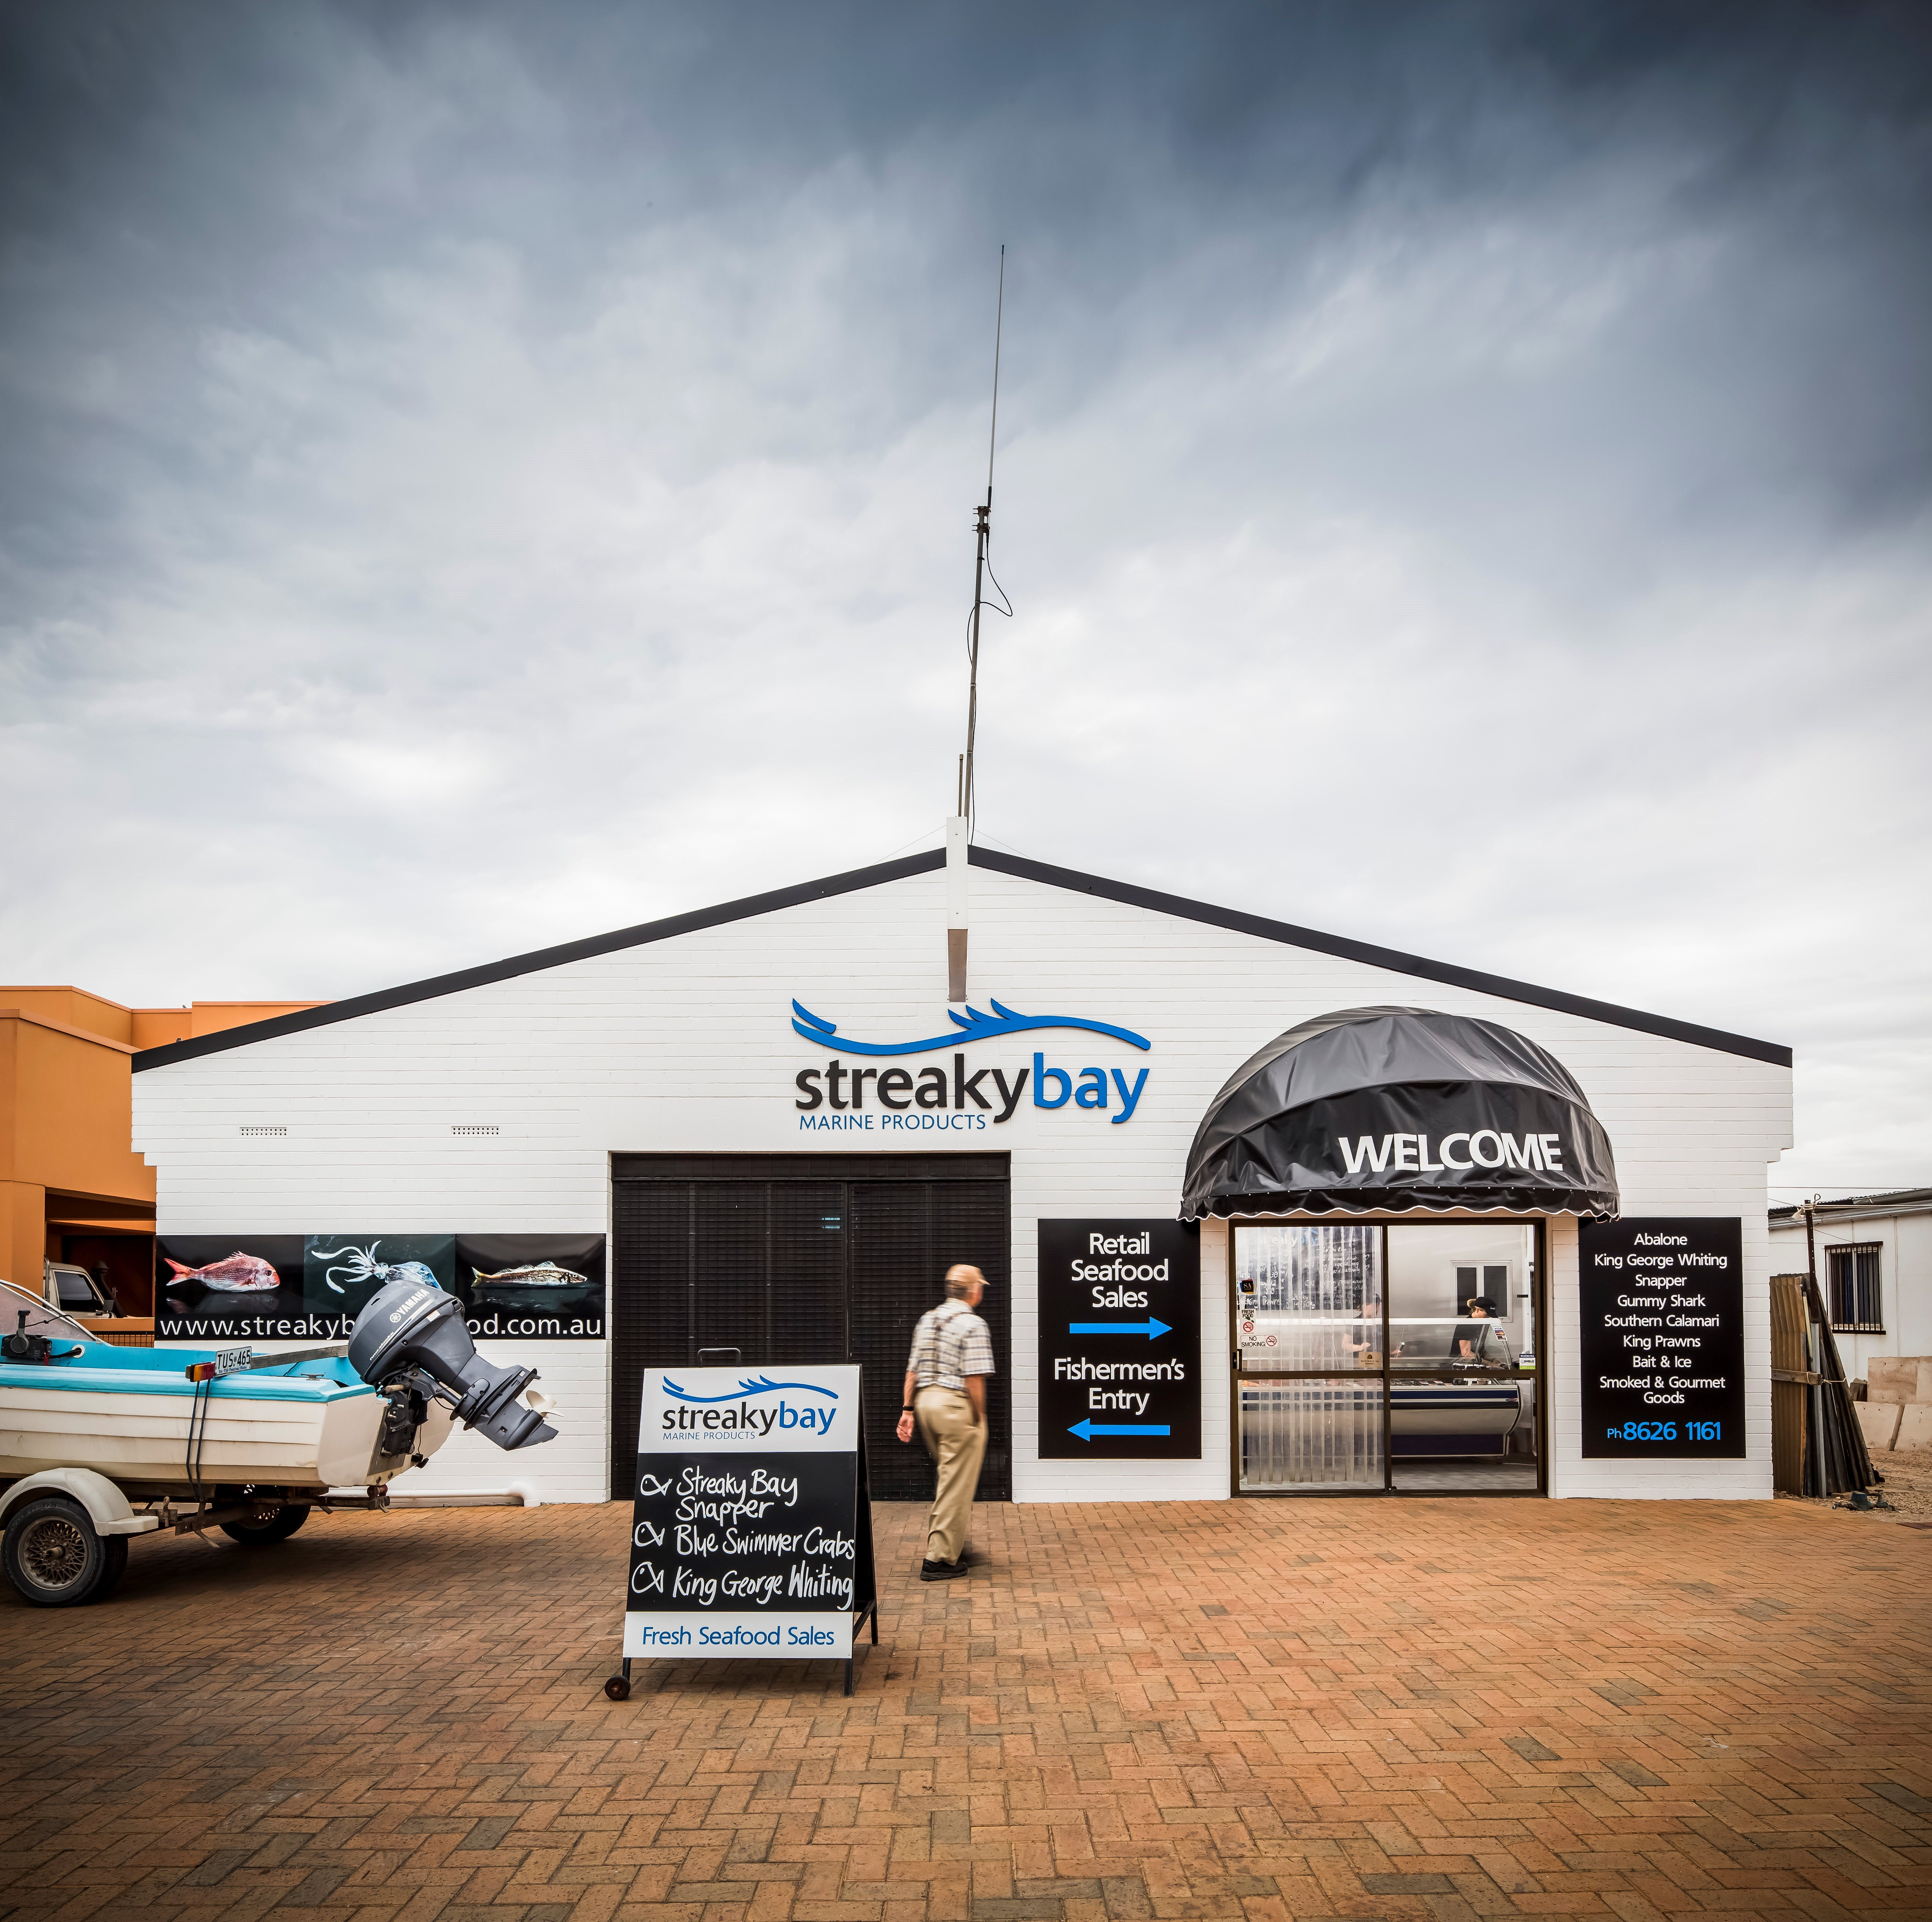 Streaky Bay Marine Products - Sydney Tourism